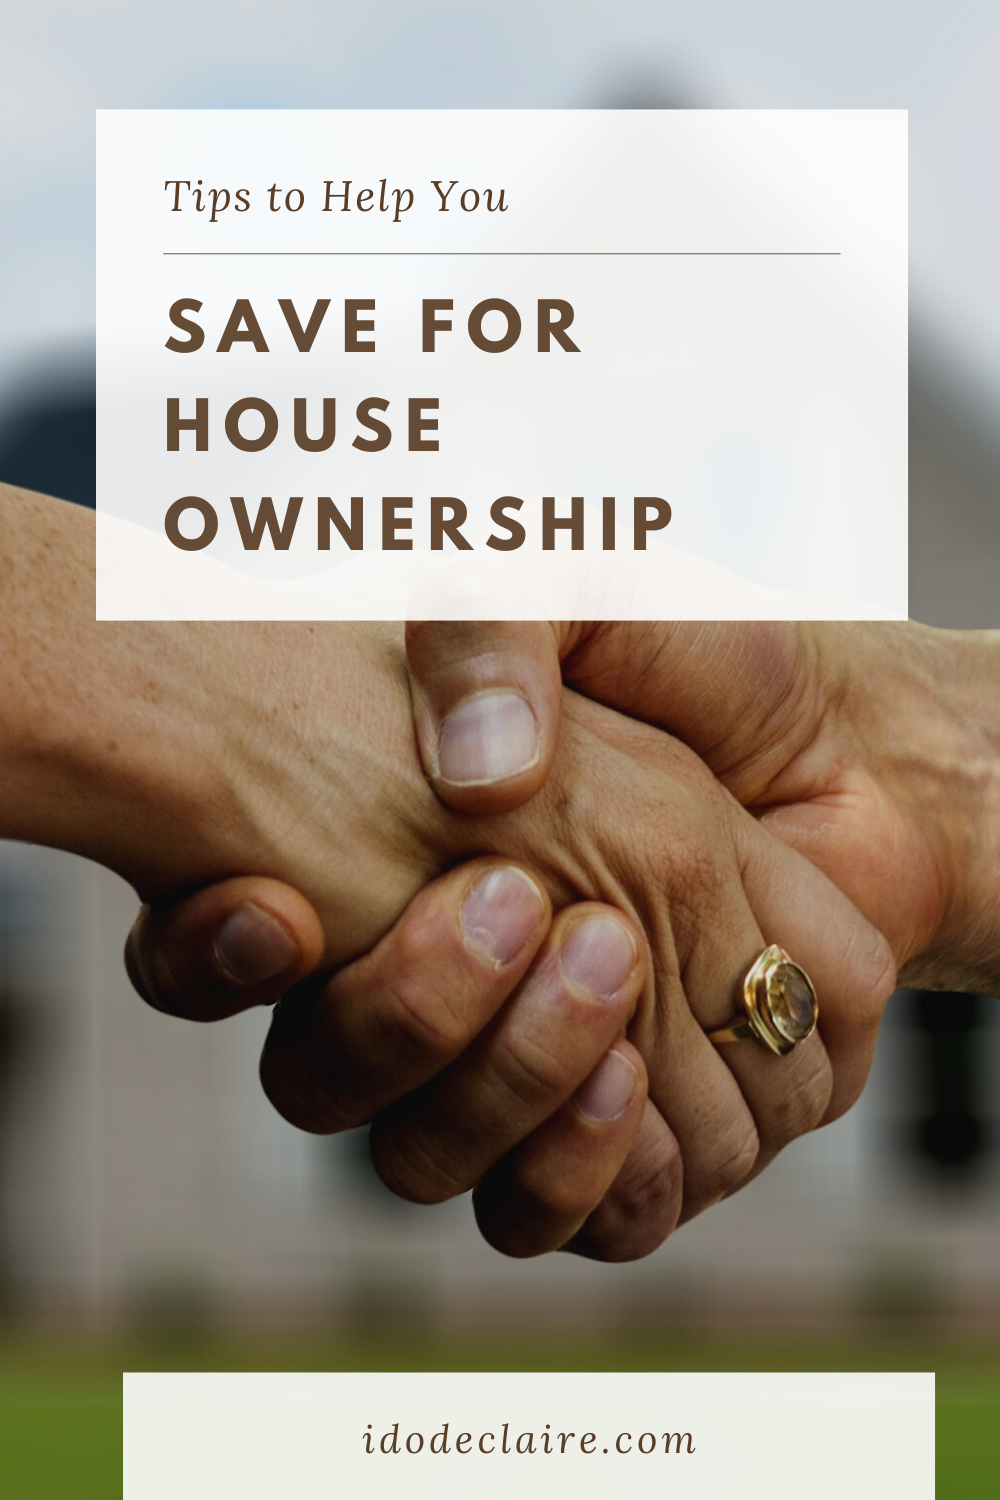 Tips to Help You Save for House Ownership